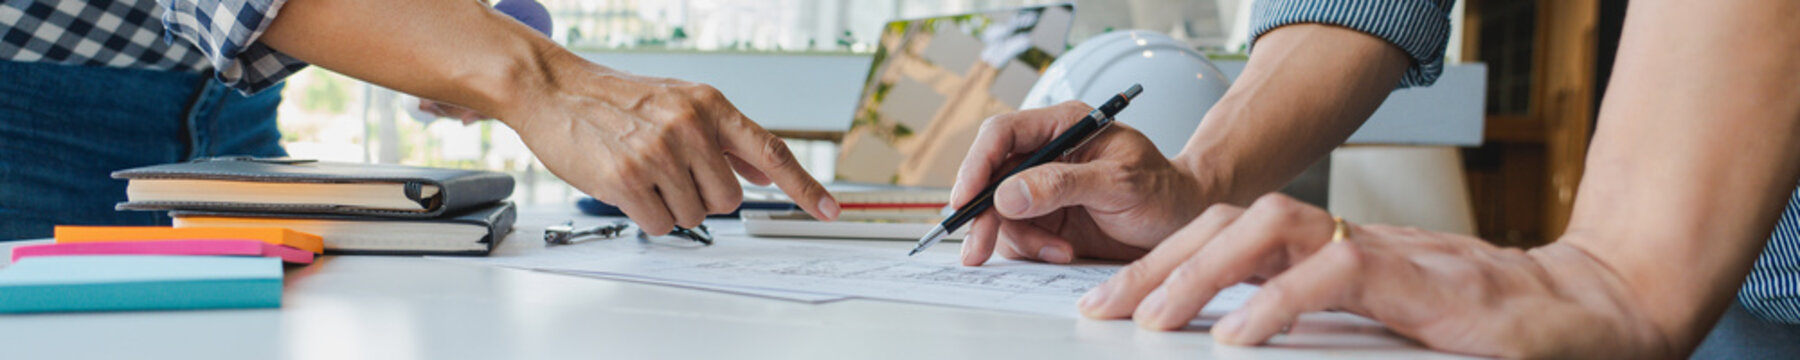 Cooperation Corporate designers in the office are working on a new project Planning blueprint Design at construction site at desk in office.